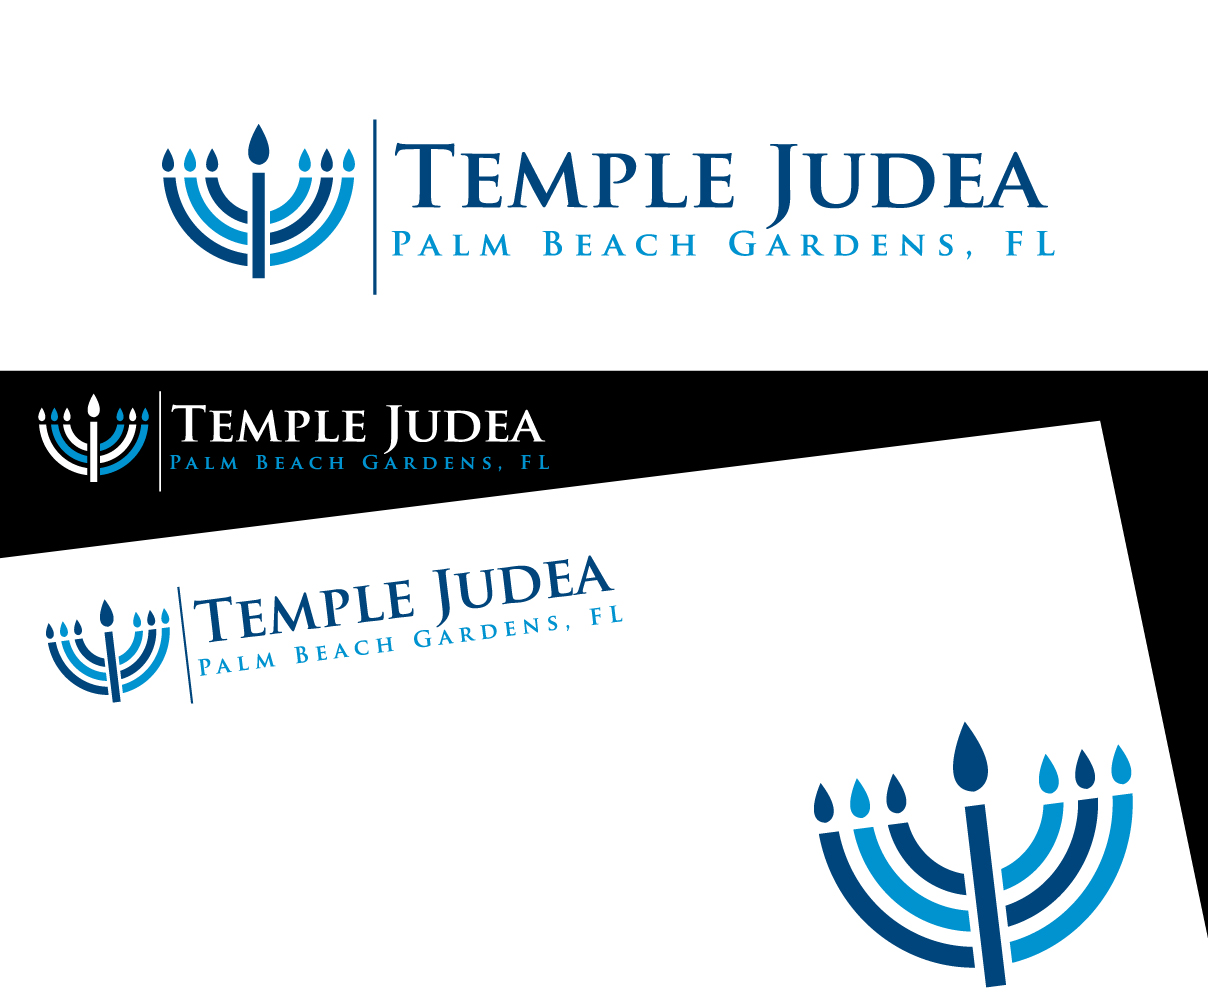 Playful Modern Logo Design For Temple Judea Palm Beach Gardens Fl By Graphicsexpert Design